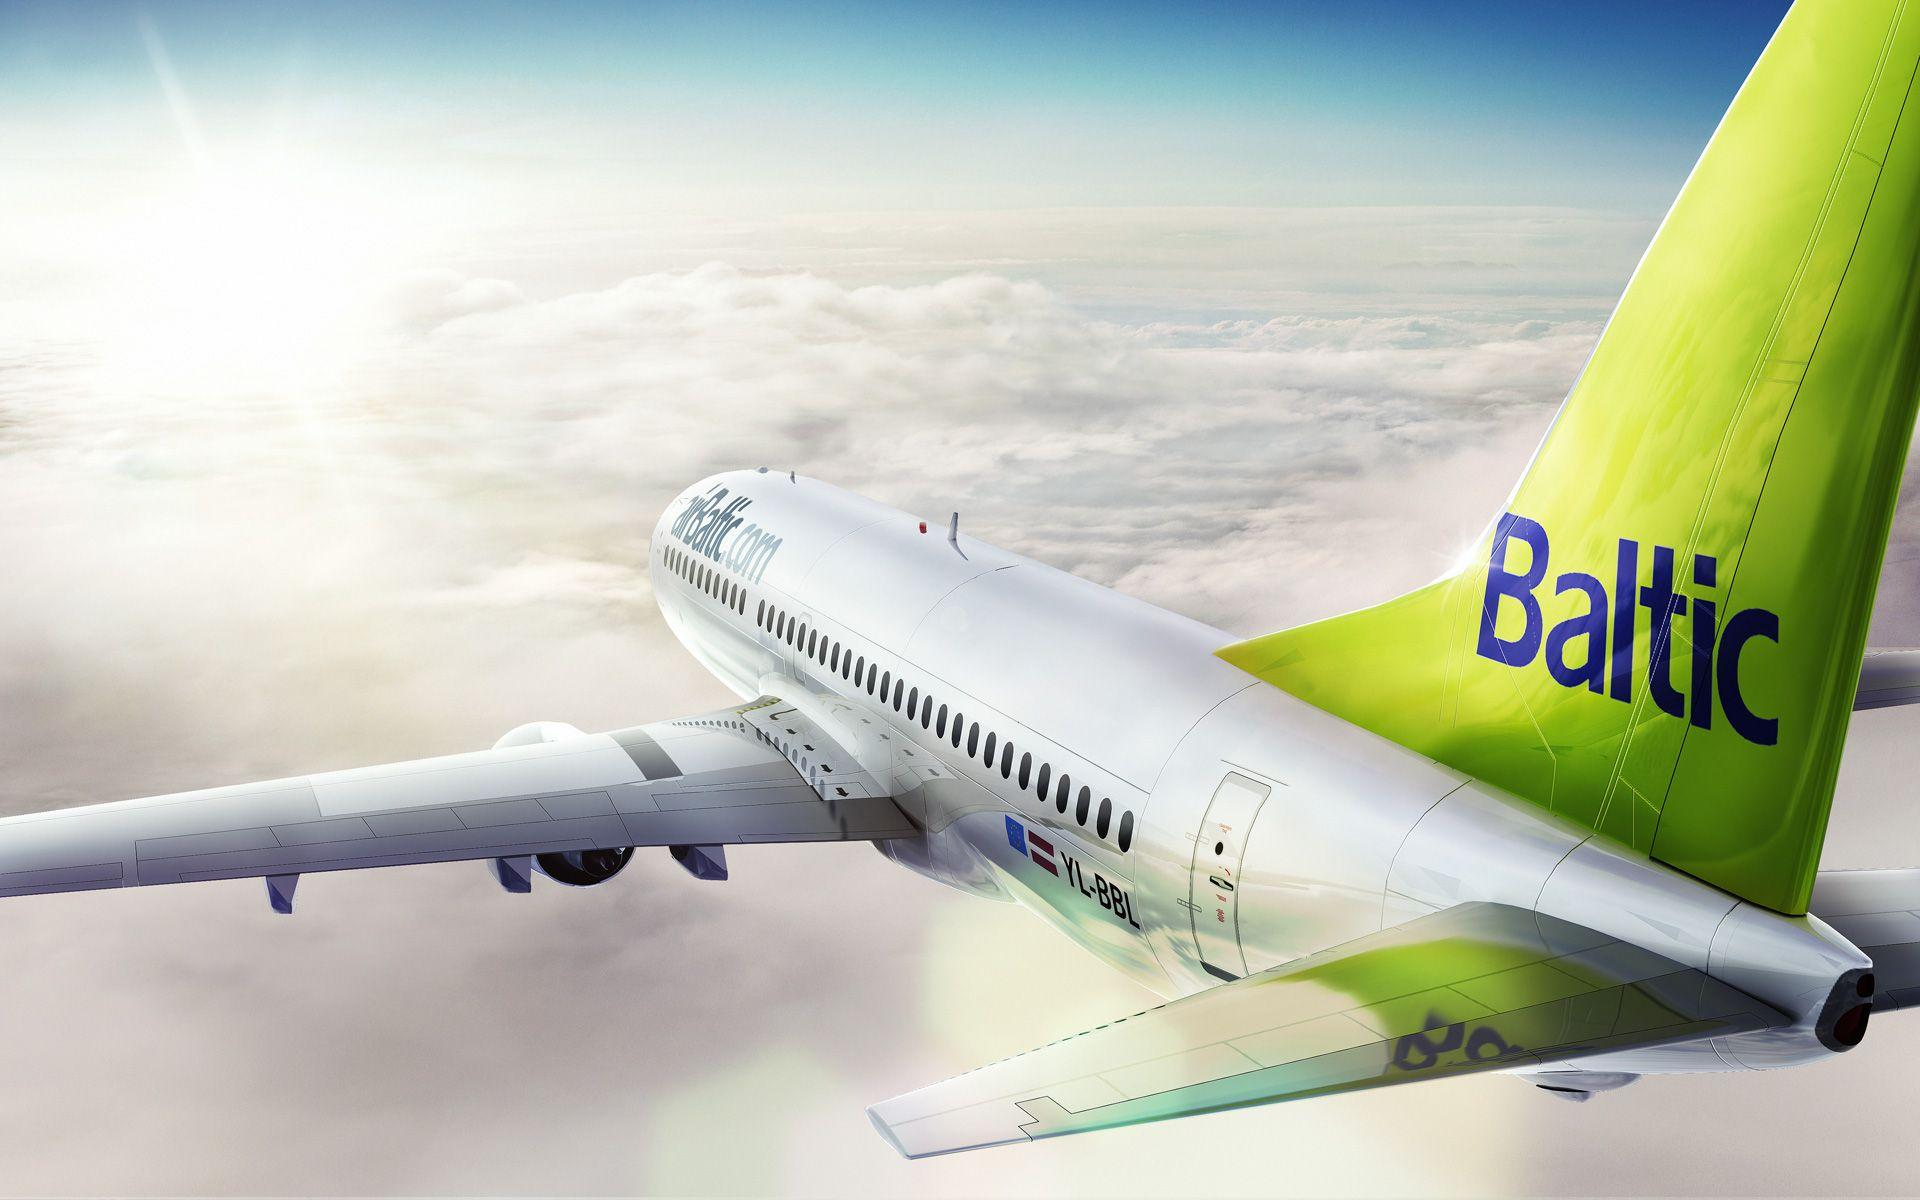 Wallpapers - airBaltic planes | airBaltic